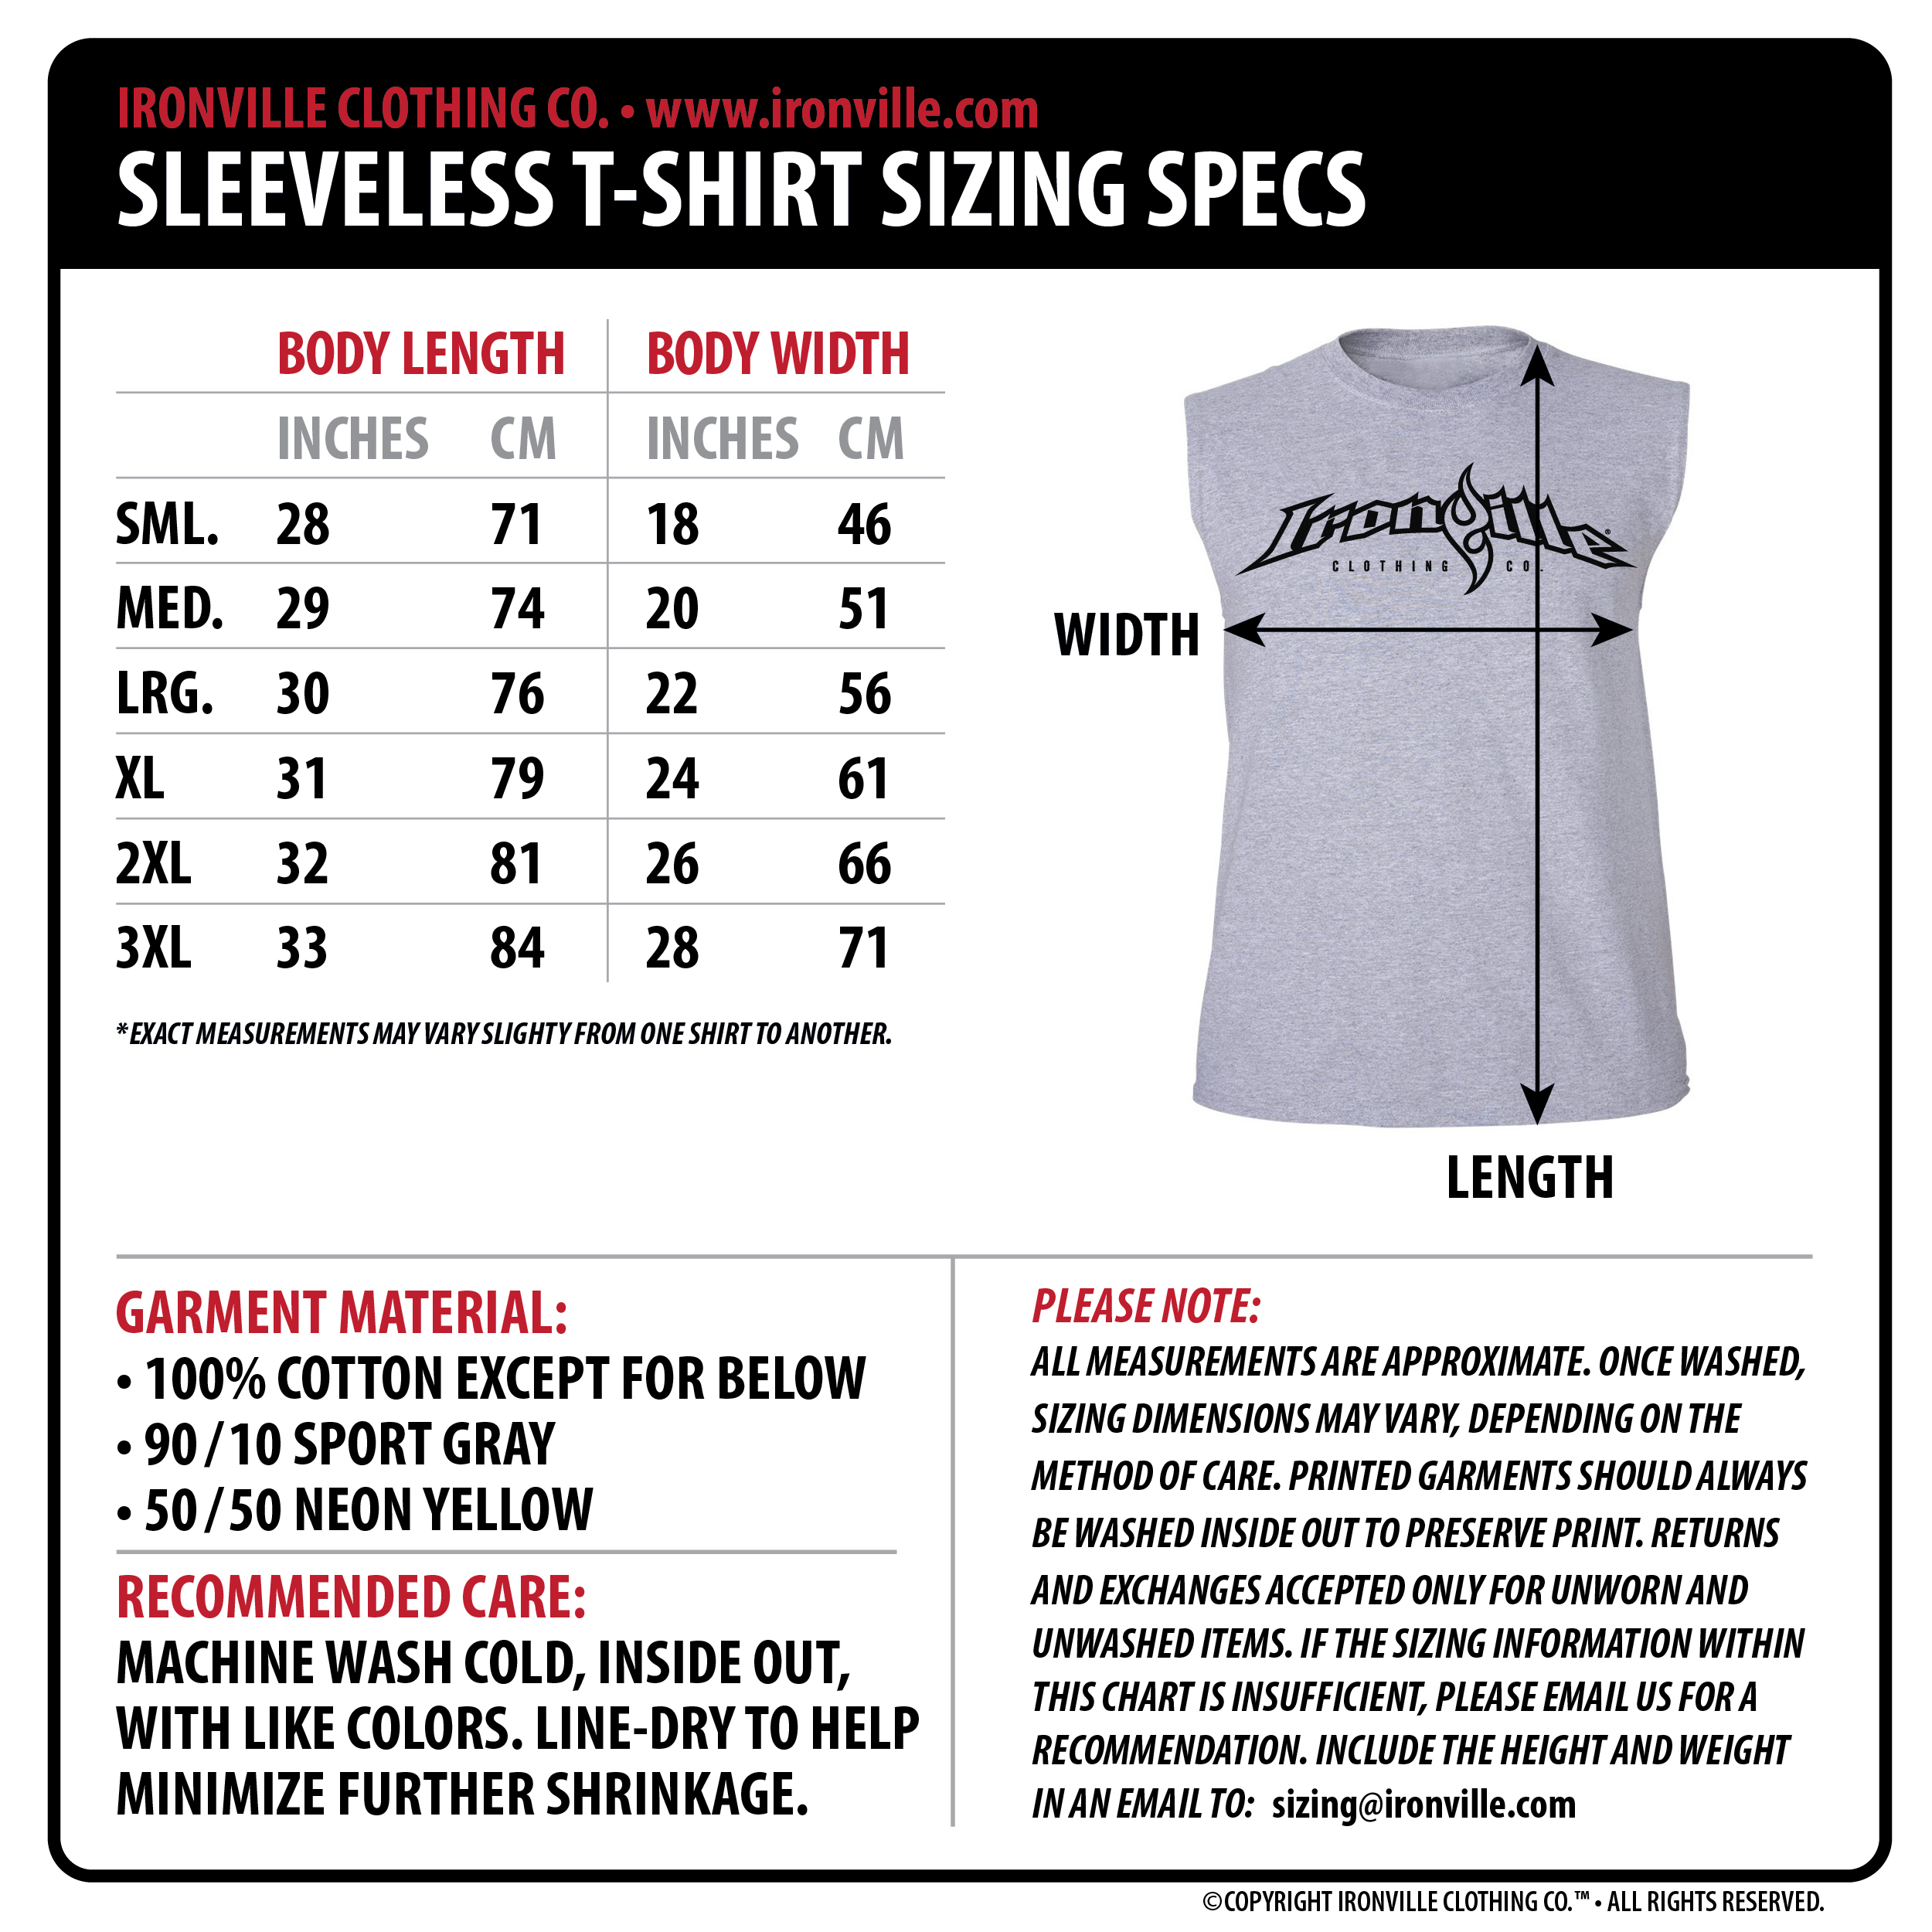 Please Note More Size Charts For Other Garment Styles Coming Soon